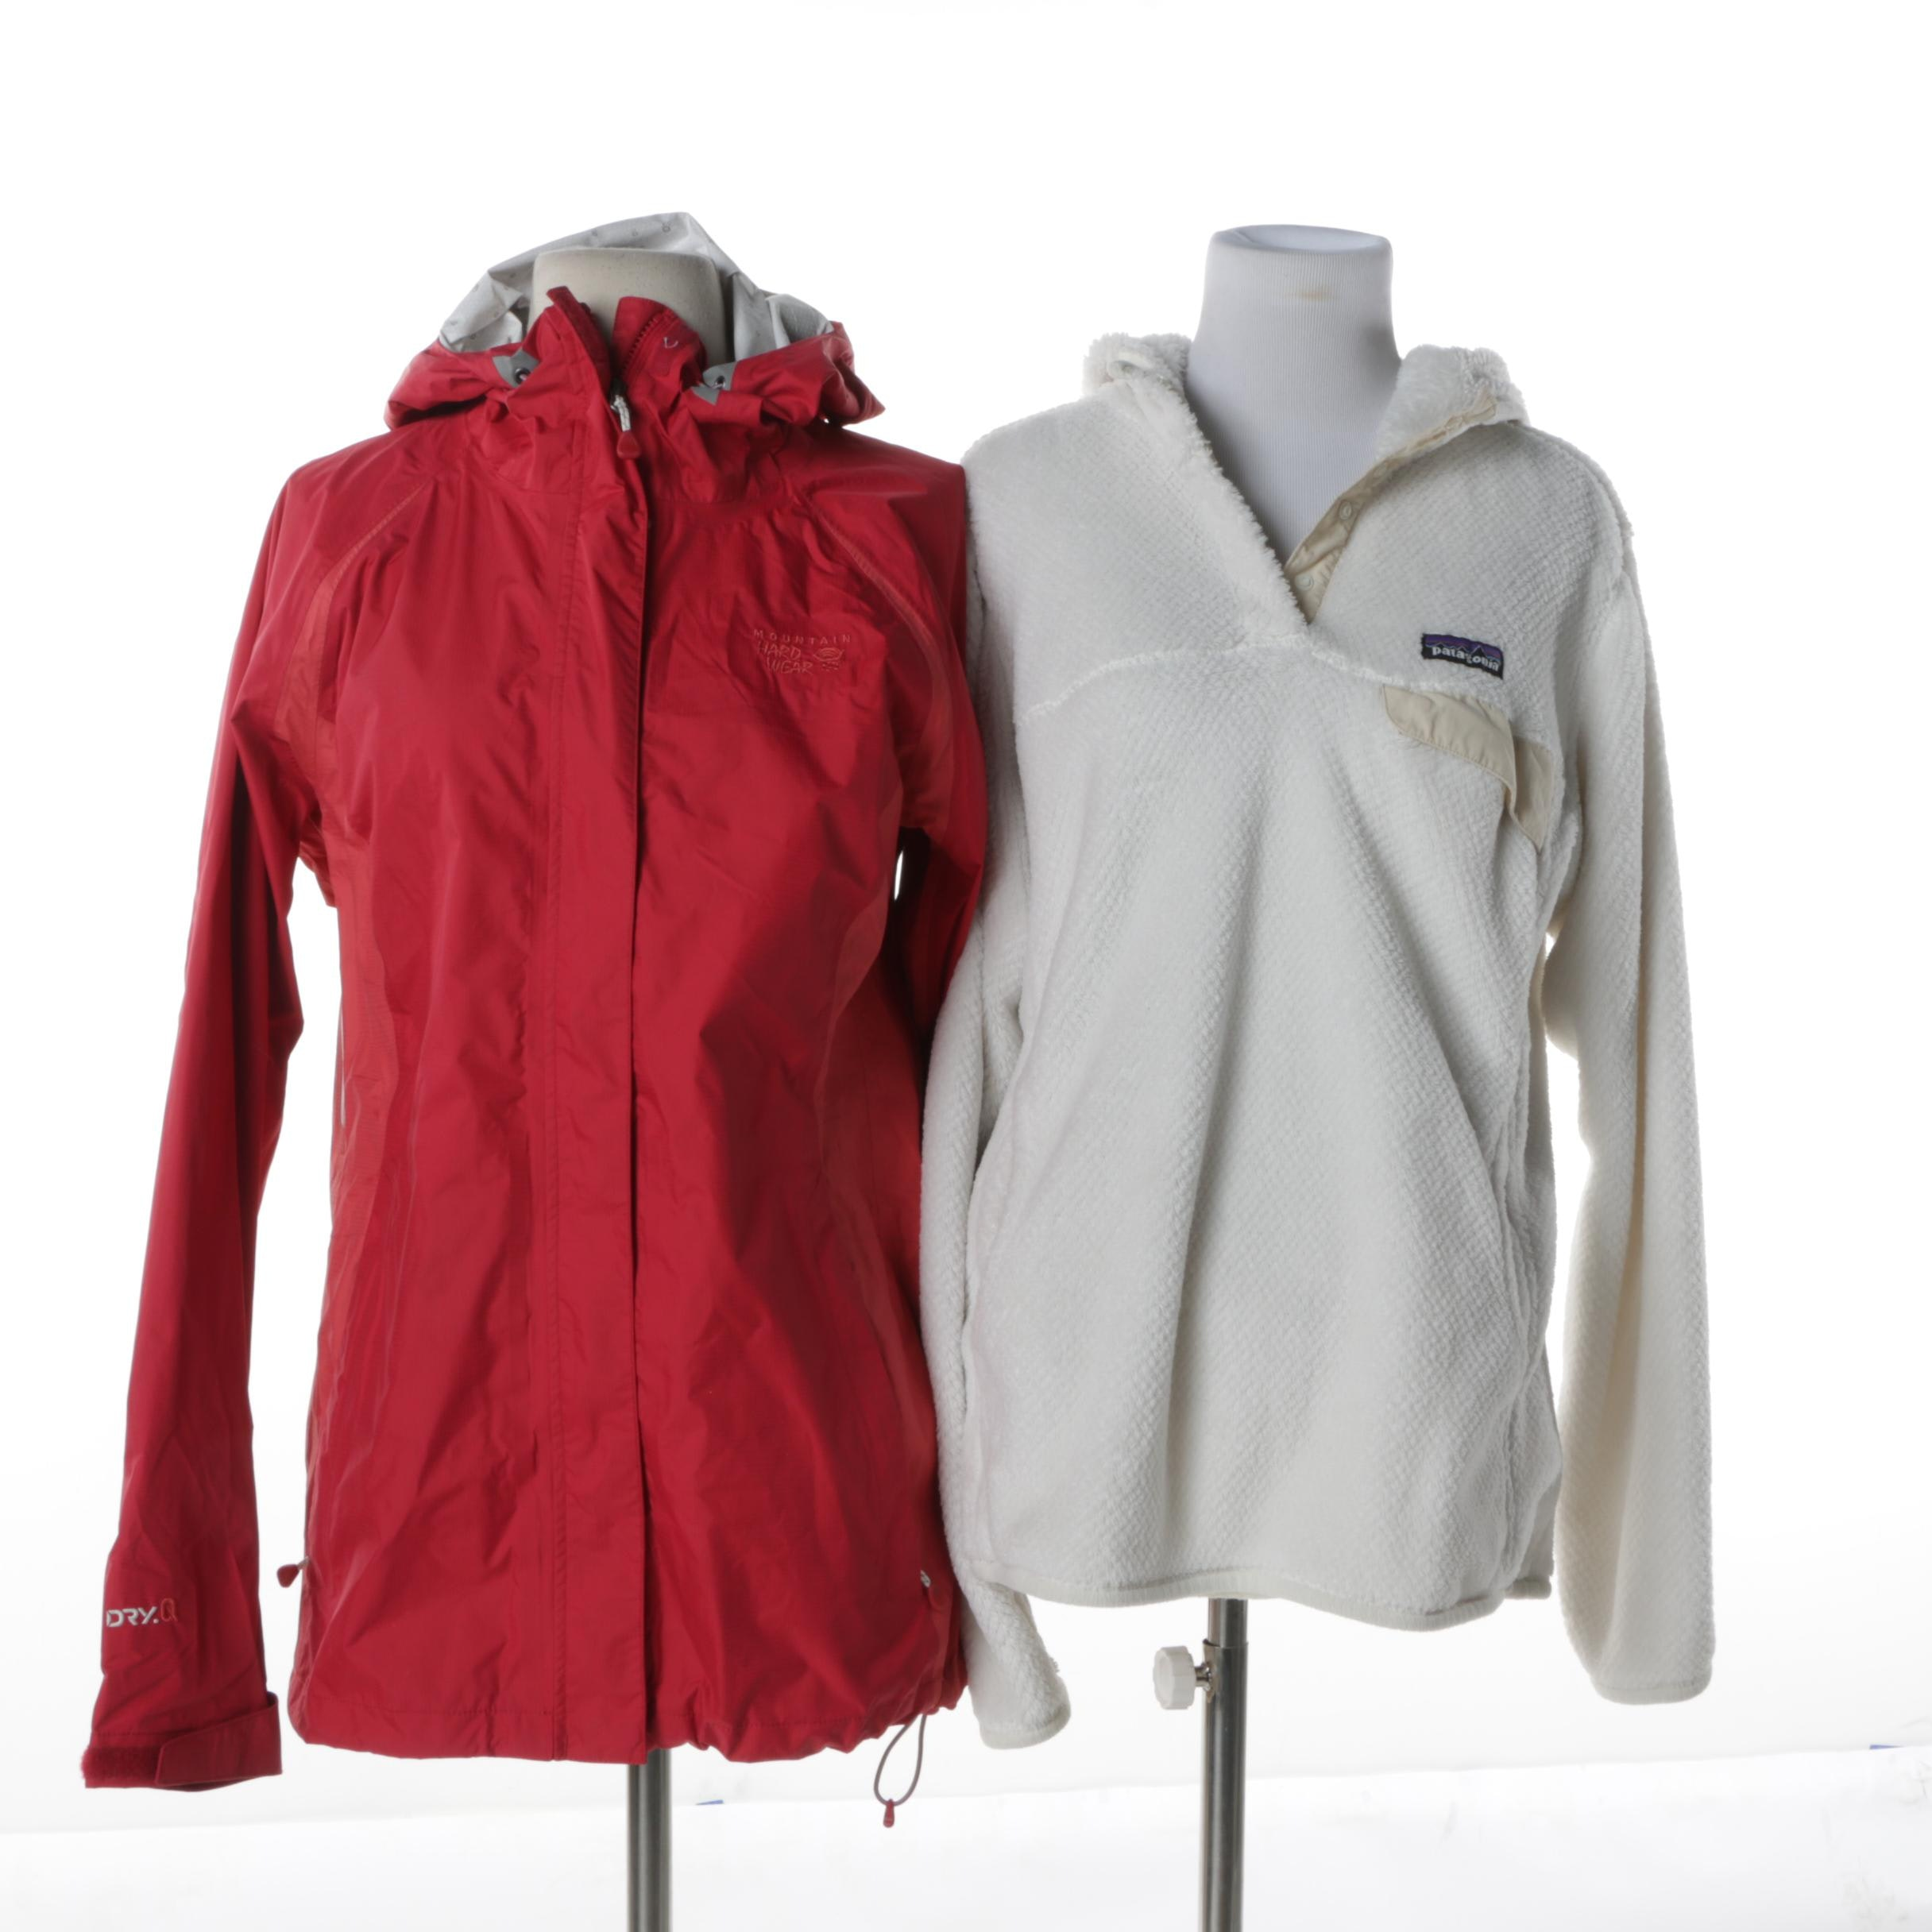 Women's Outerwear Including Patagonia and Mountain Hard Wear